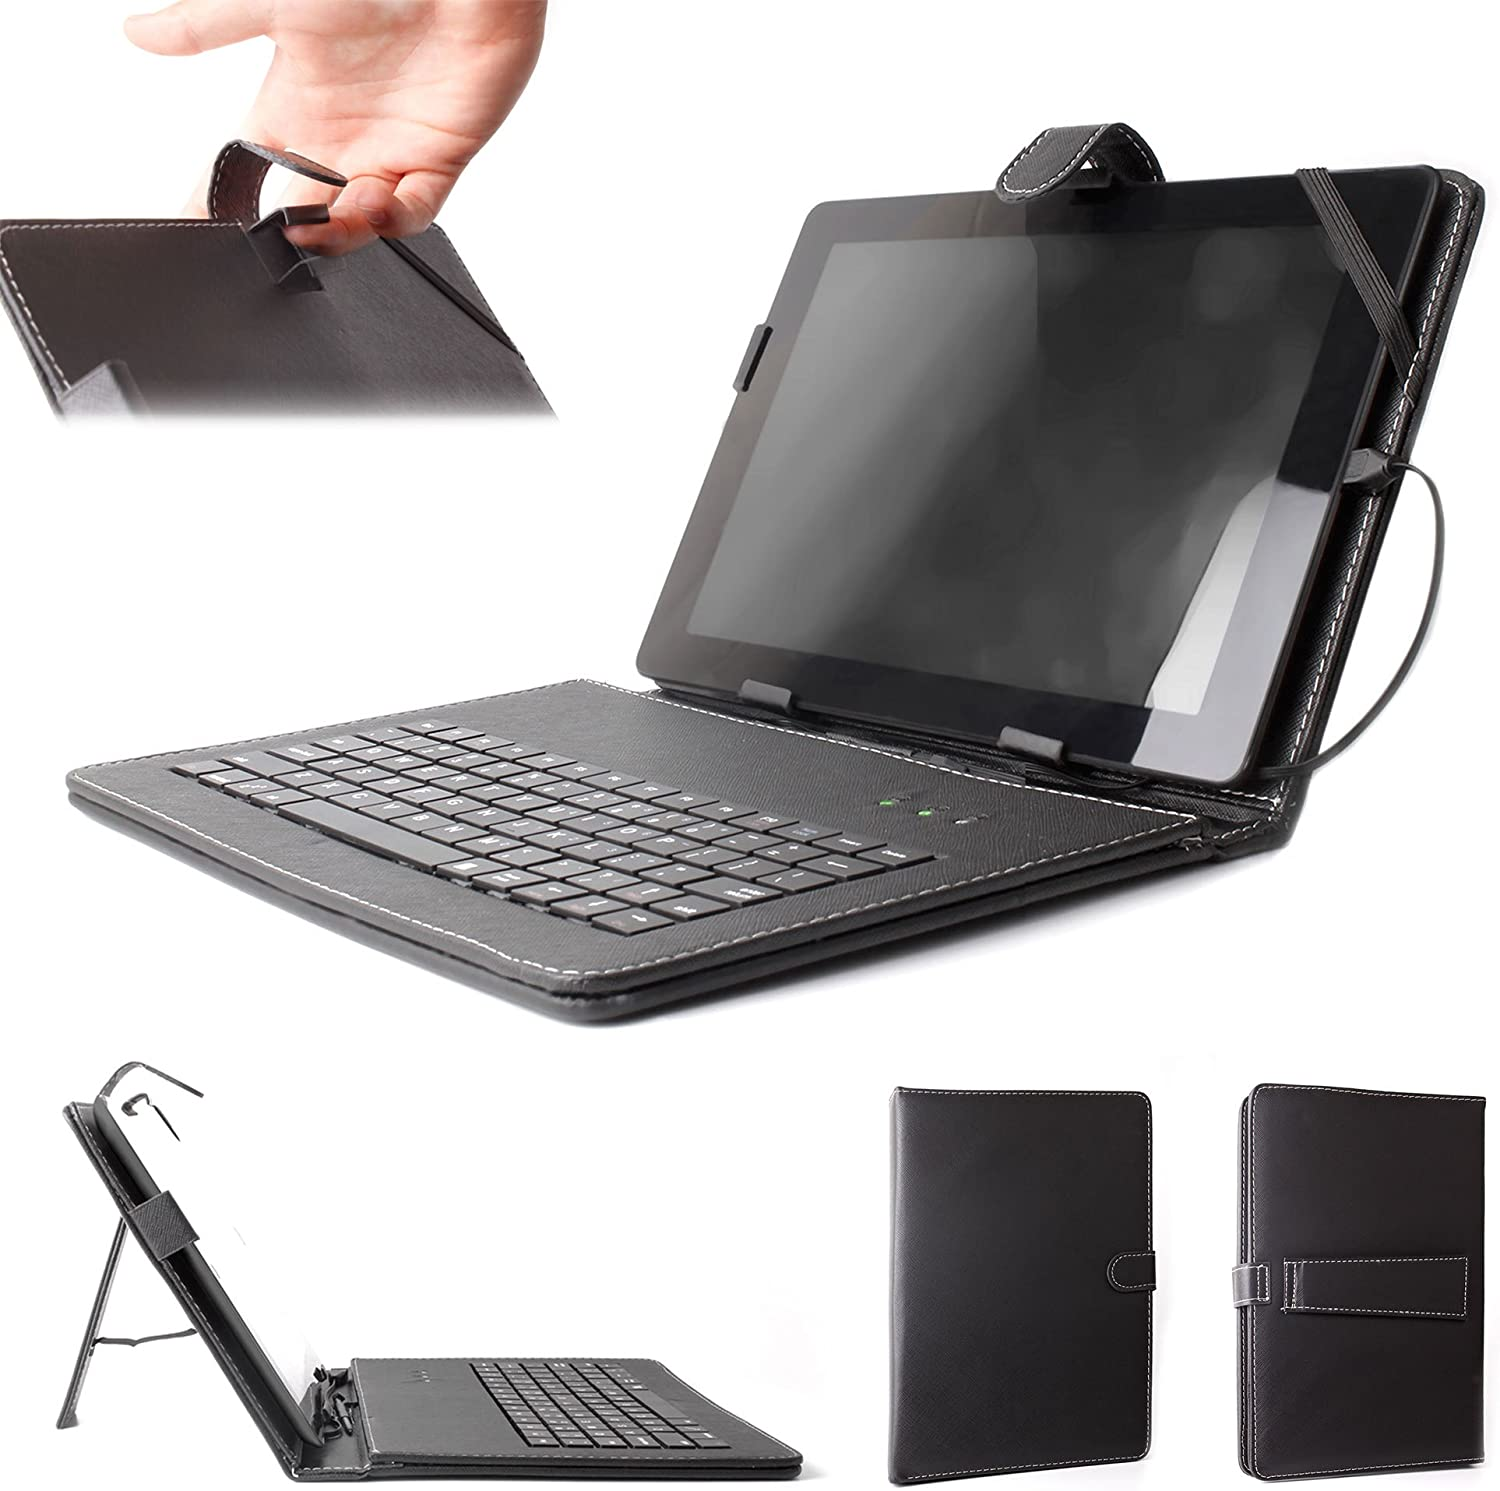 DURAGADGET Black Faux Leather Protective Case w/QWERTY Micro USB Keyboard - Compatible with Acer Iconia Tab A3 | Aspire Iconia Tab A500 10.1 inch & Ionia A200 Tablets